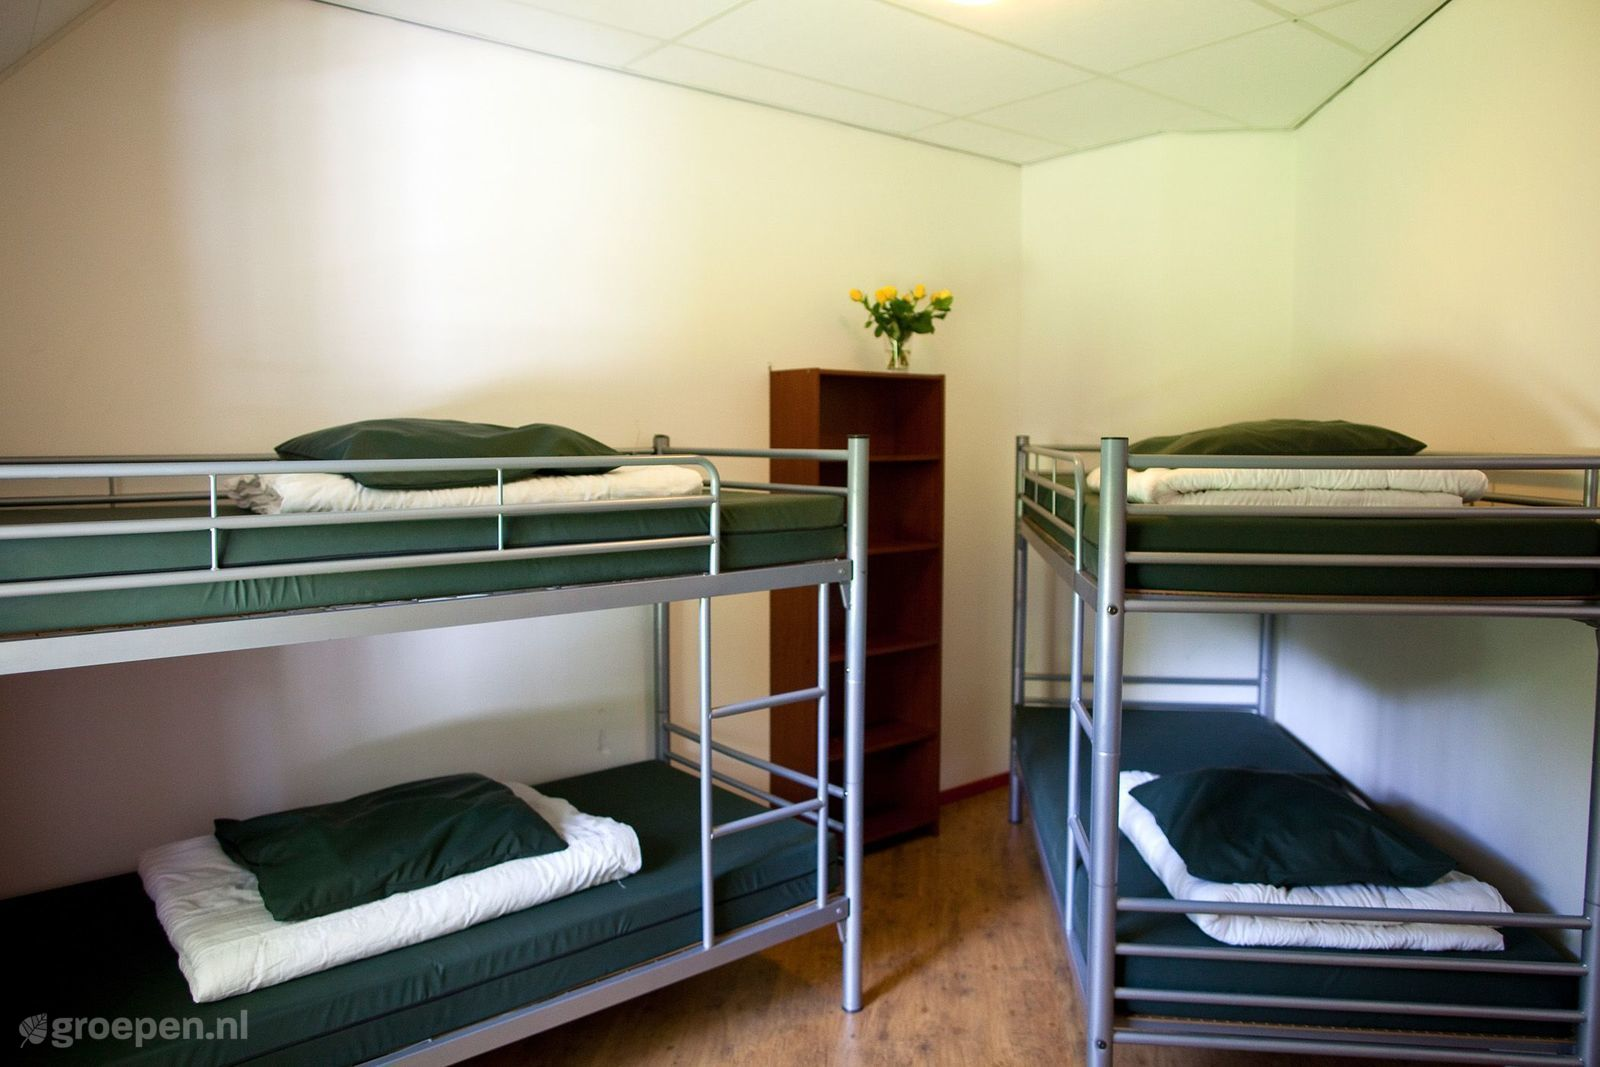 Group accommodation Overloon